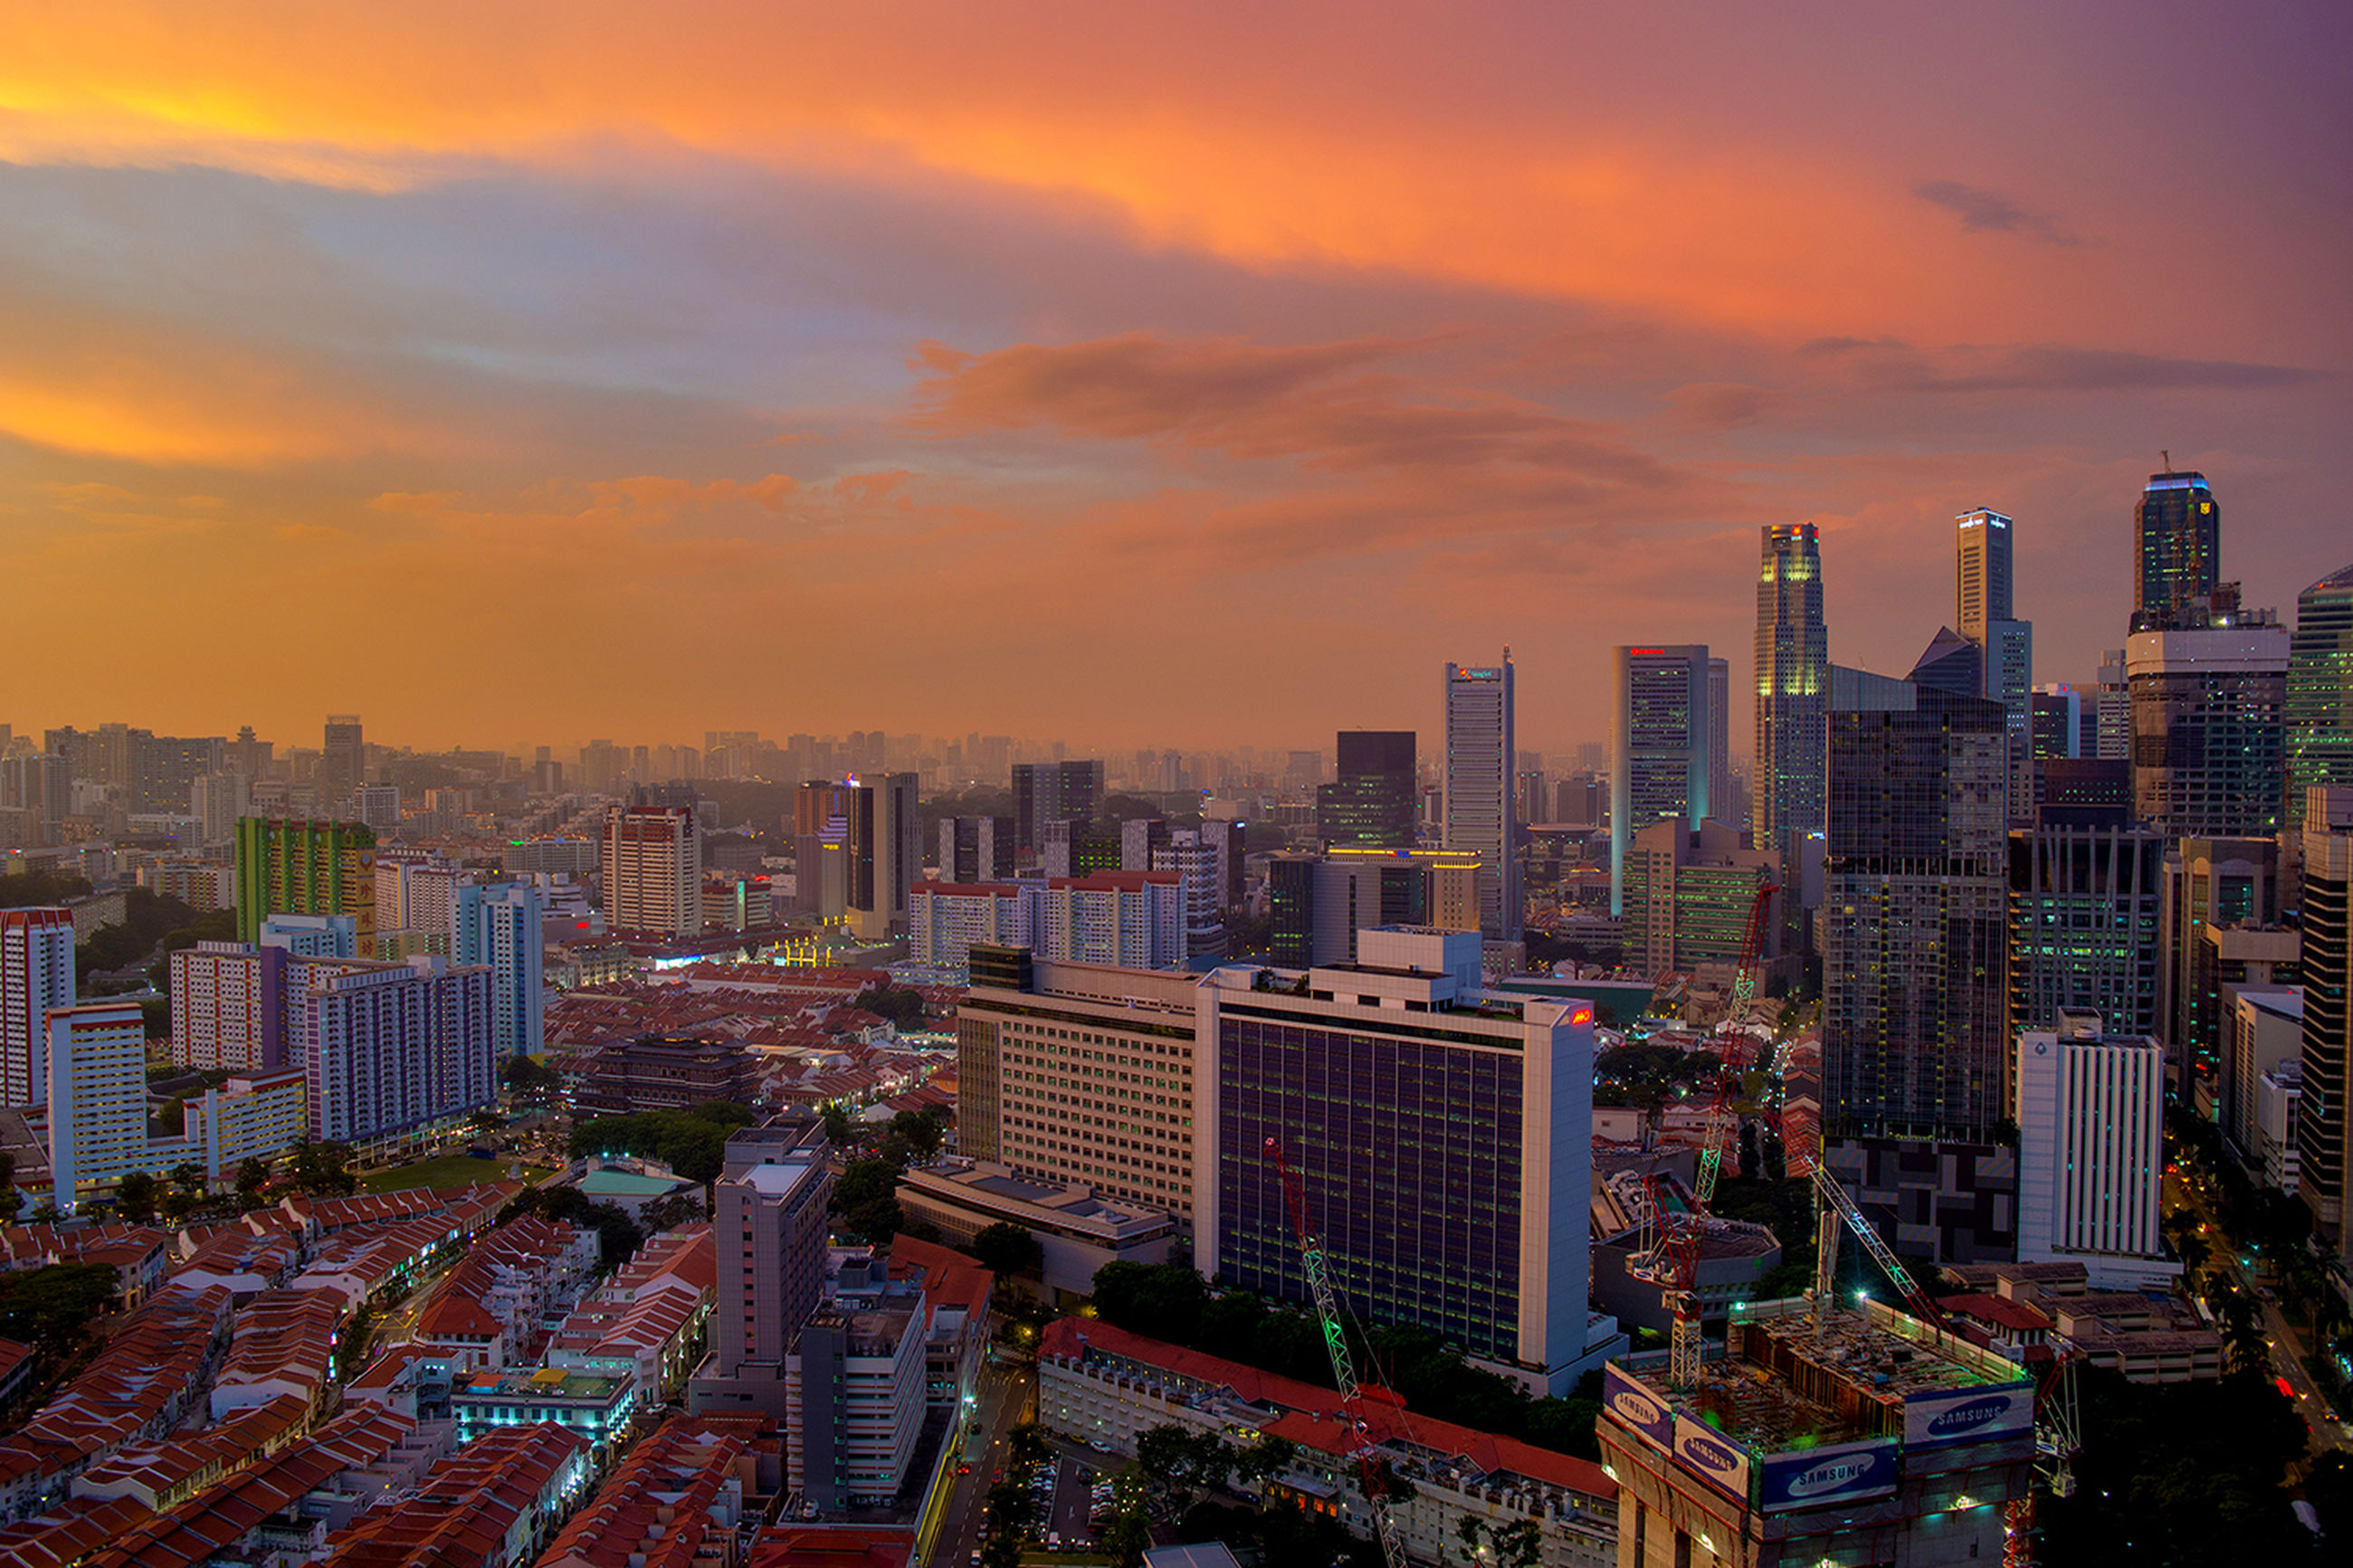 city, building exterior, architecture, cityscape, built structure, sunset, skyscraper, sky, high angle view, tower, crowded, tall - high, orange color, city life, modern, cloud - sky, office building, residential district, urban skyline, residential building